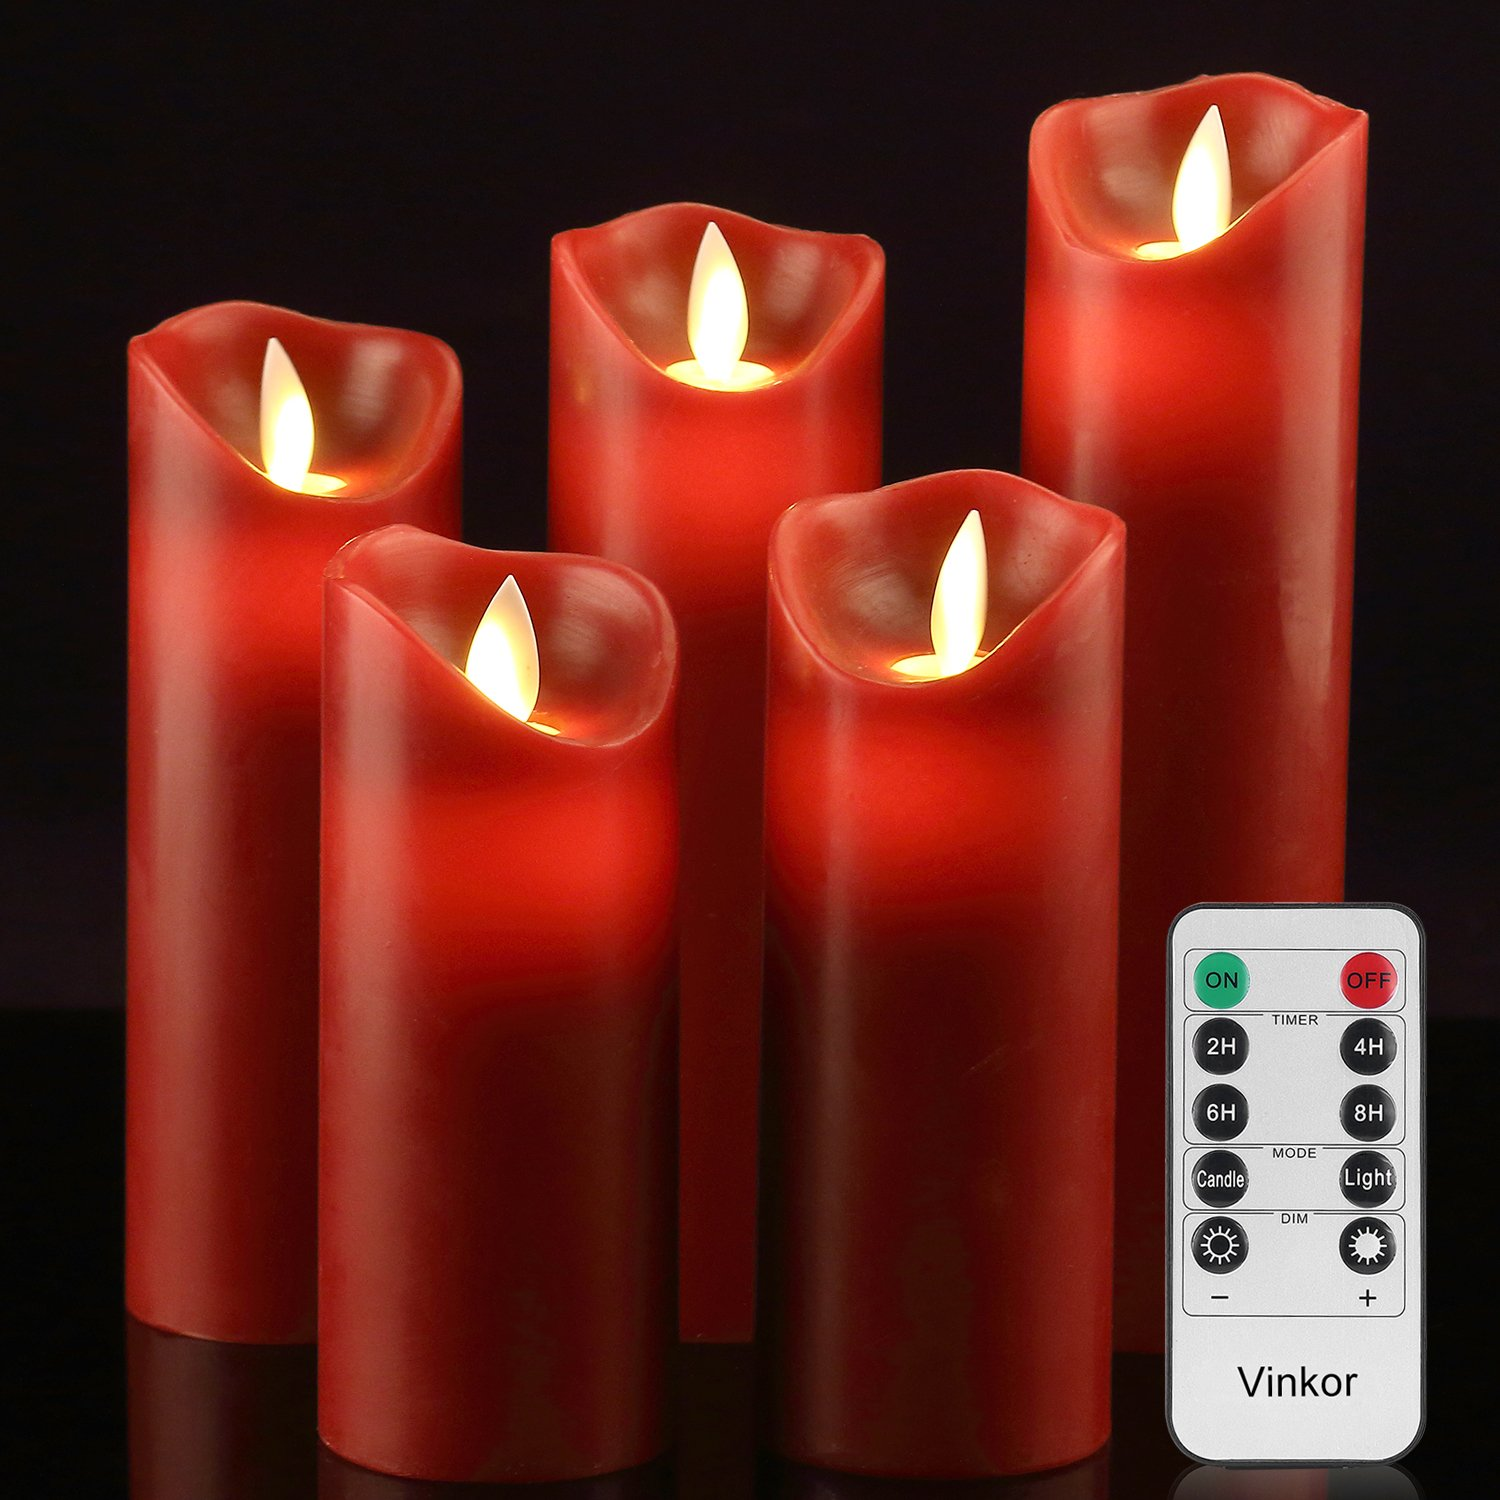 Vinkor Flameless Candles Battery Operated Candles 4'' 5'' 6'' 7'' 8'' Set of 5 Burgundy Real Wax Pillar LED Candles with 10-Key Remote and Cycling 24 Hours Timer